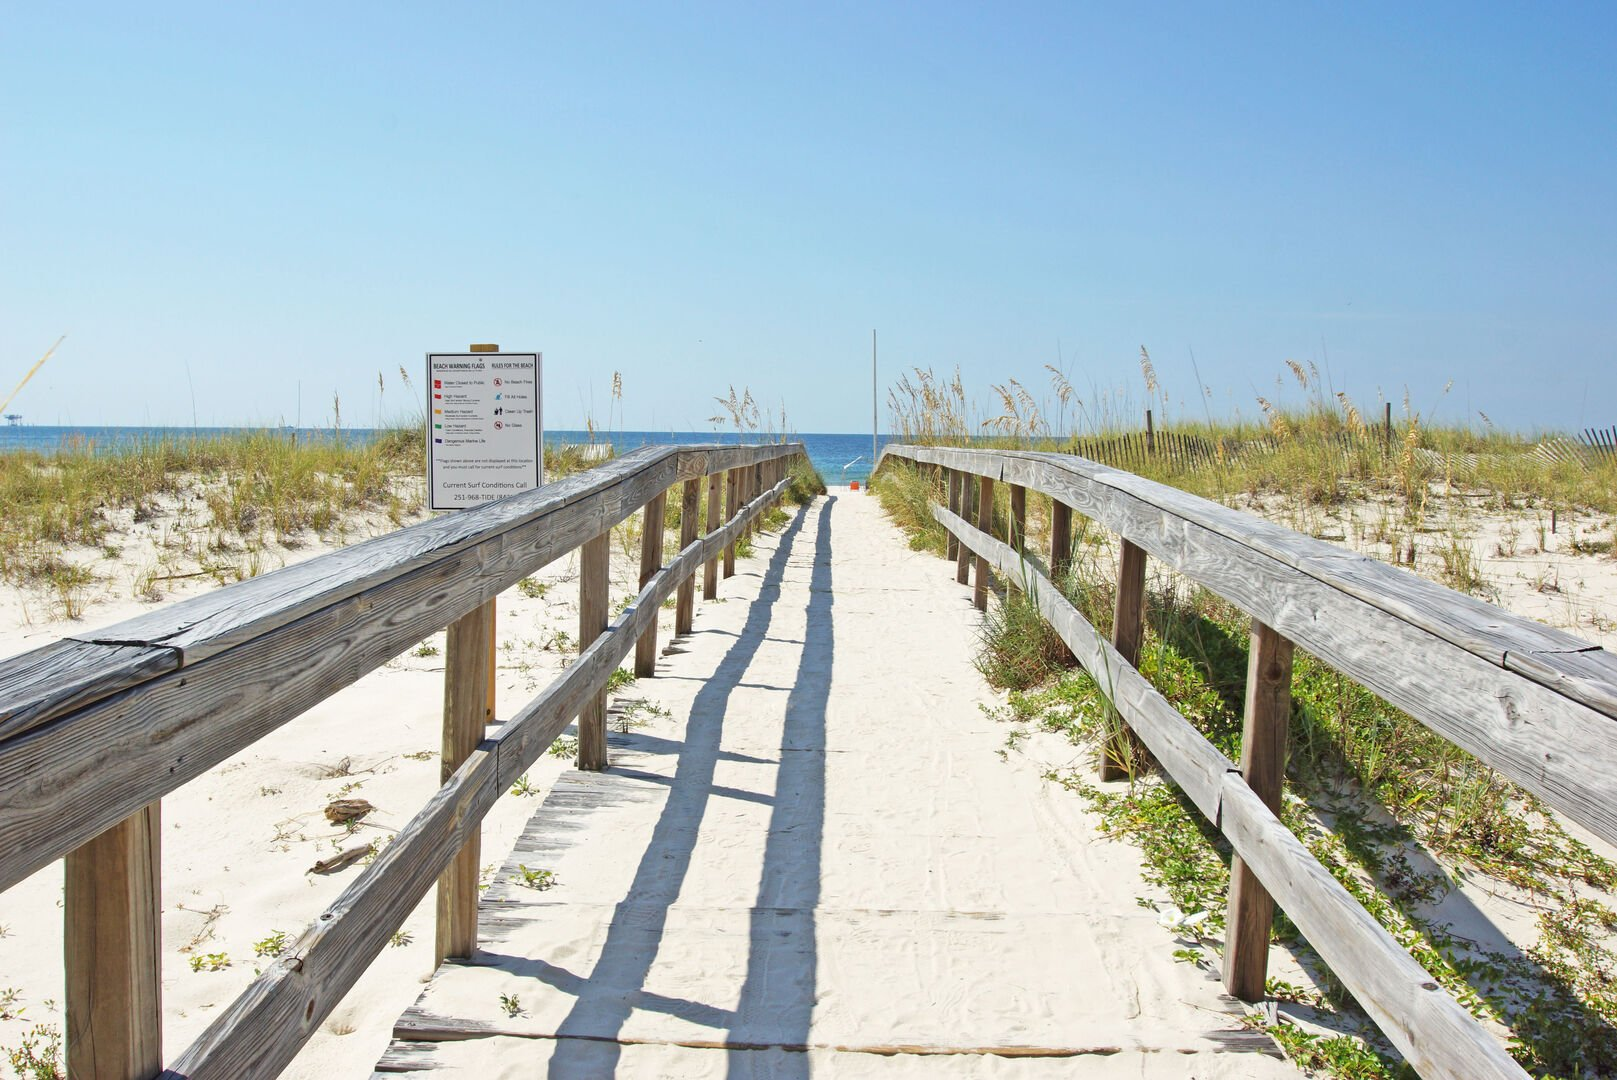 An Image of the Walkway Leading to Beach.